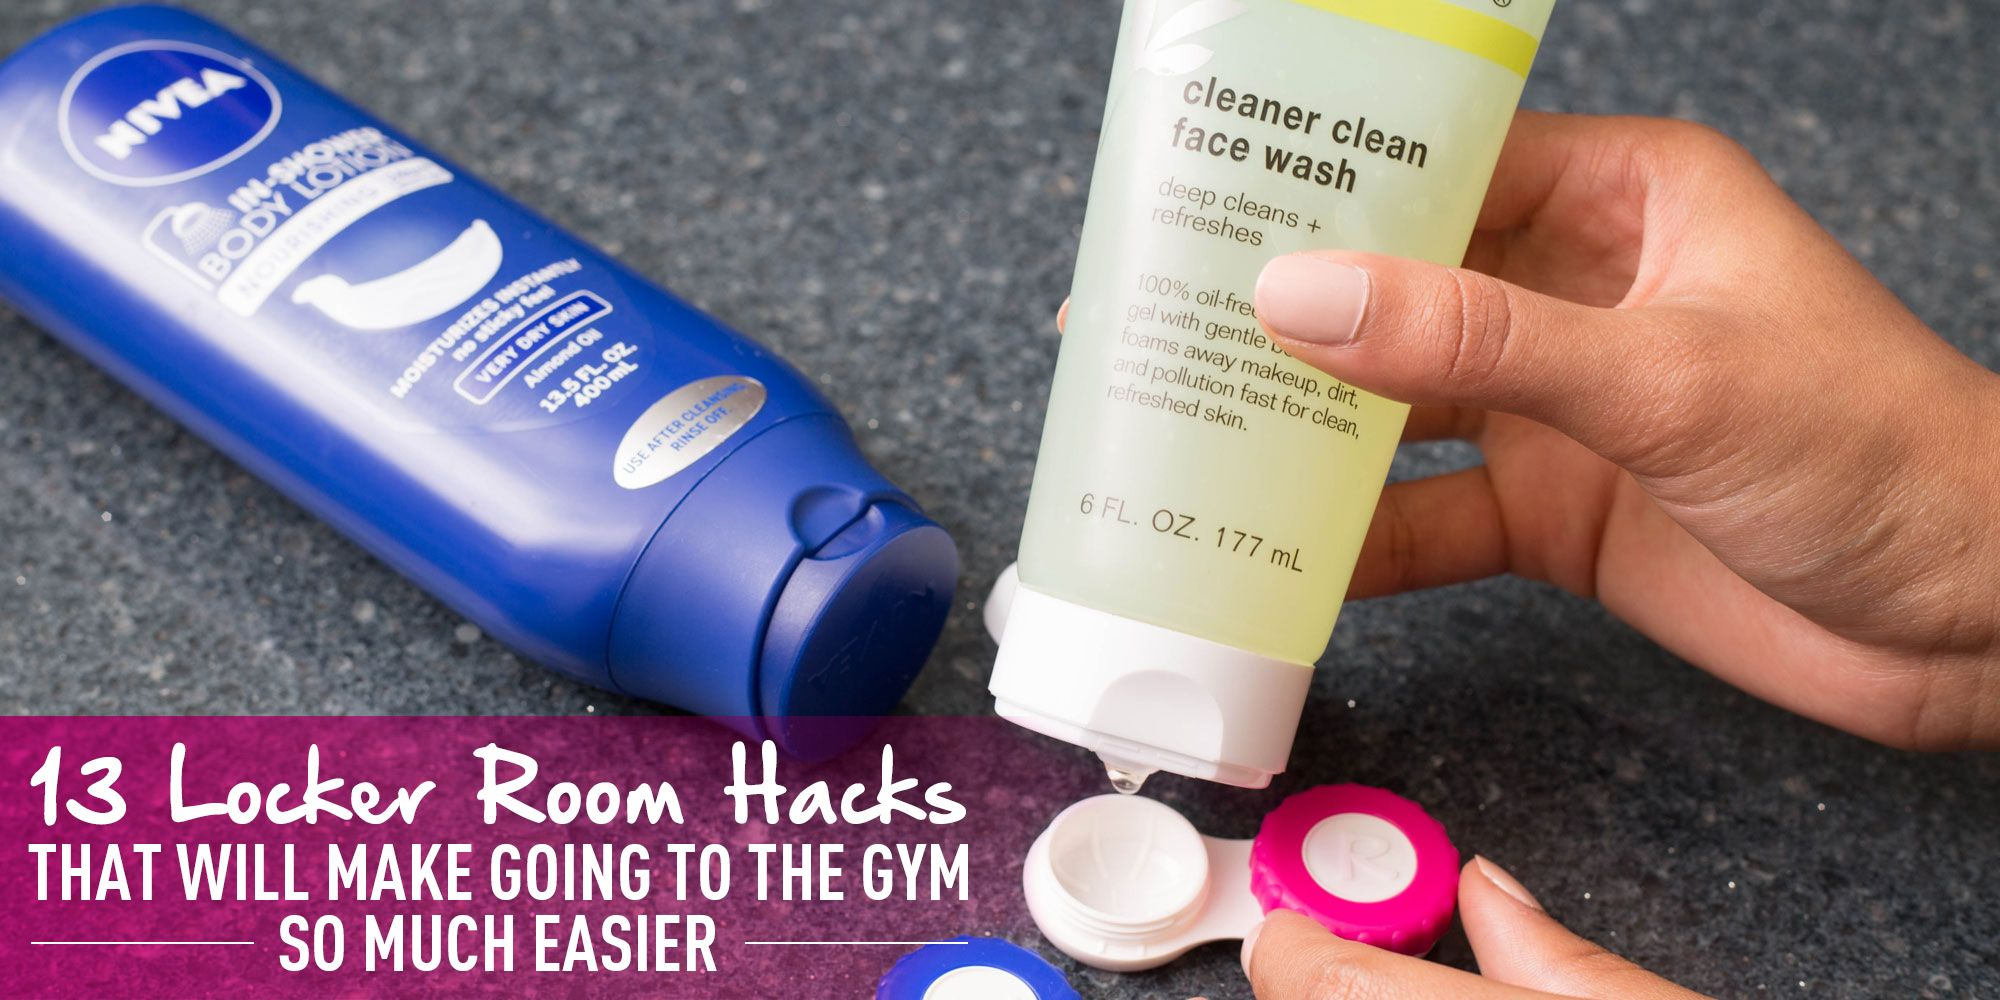 ee0fe9660afc 13 Locker Room Hacks That Will Make Going to the Gym So Much ...